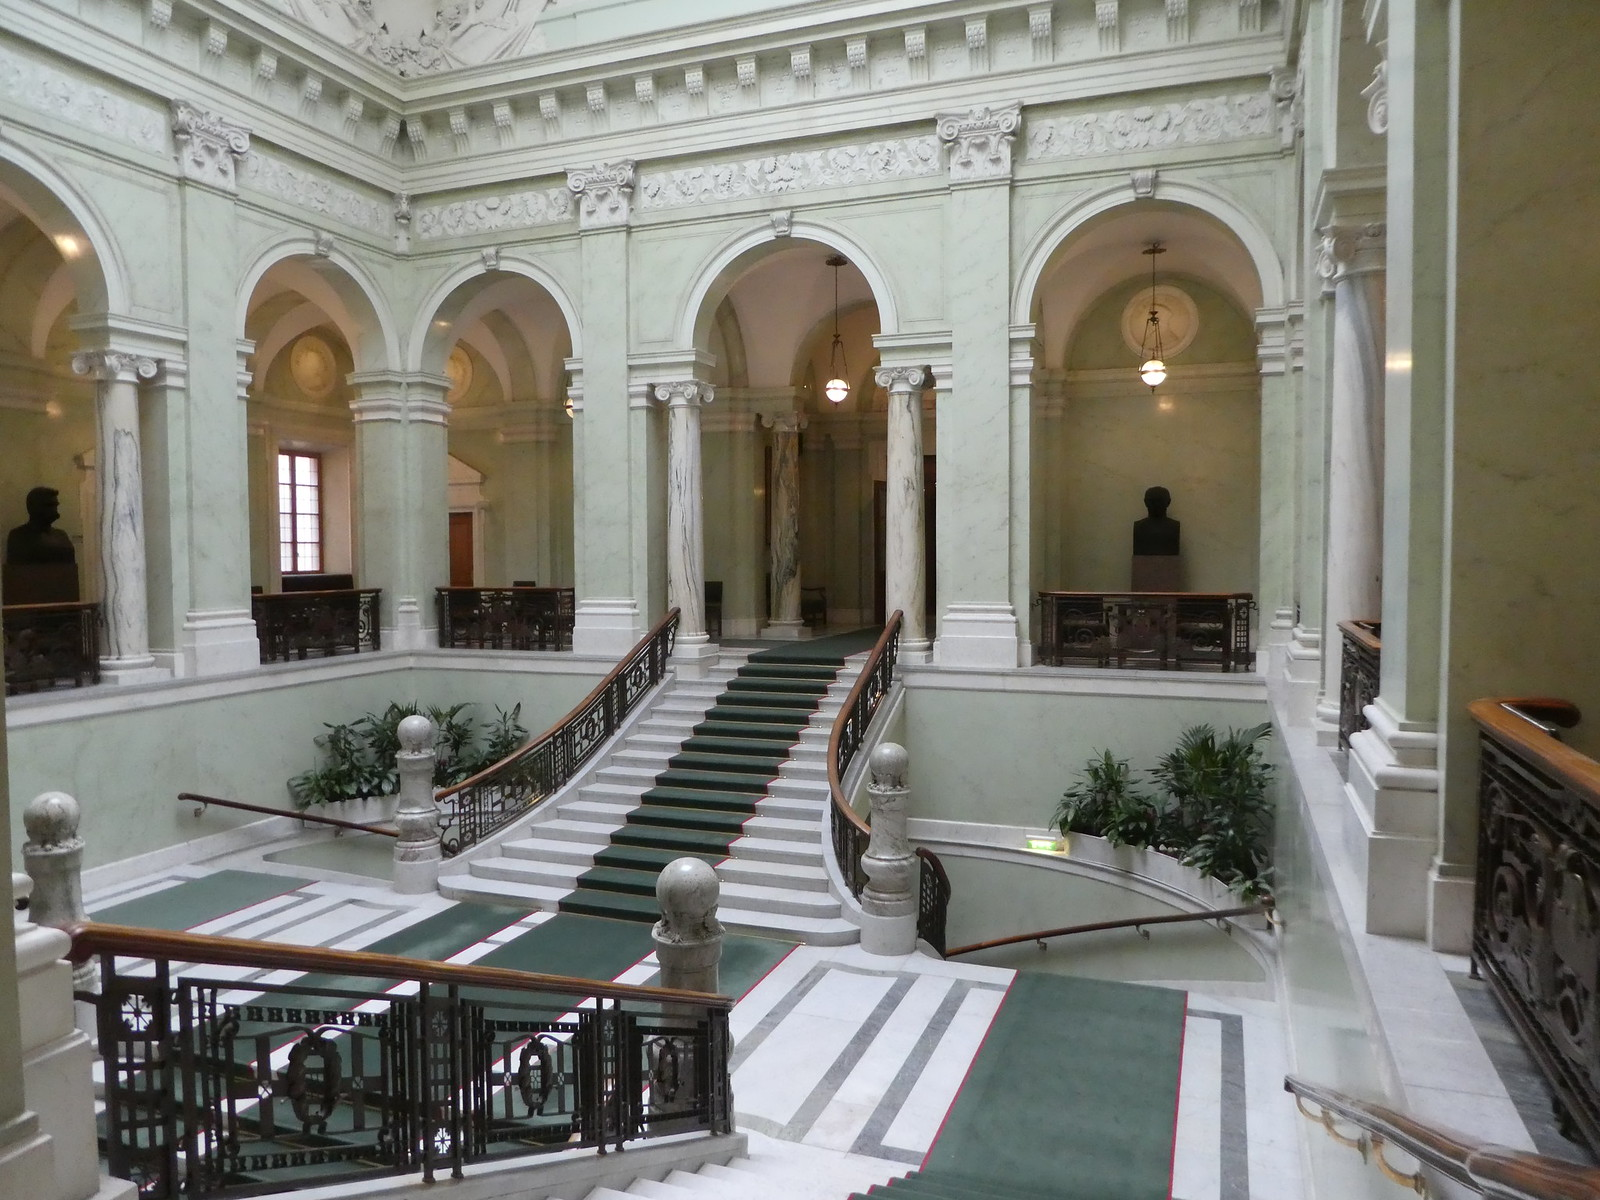 Entrance Hall and Grand Staircase, Swedish Parliament